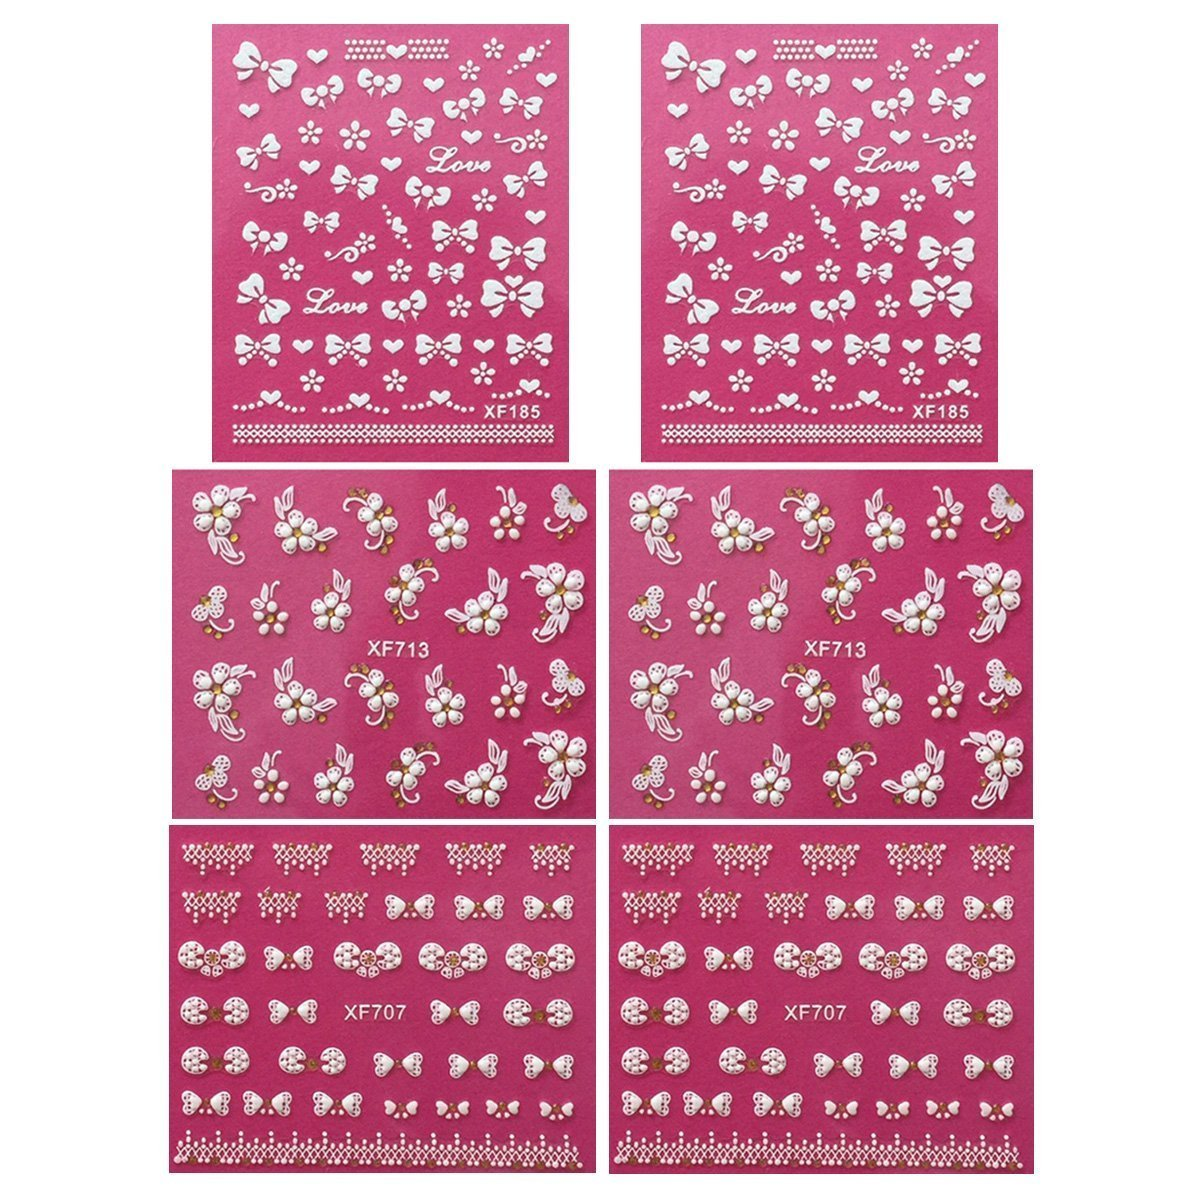 Wrapables Fingernail Stickers Nail Art Nail Stickers Self-Adhesive Nail Stickers 3D Nail Decals - Bows, Hearts & Flowers (3 designs/6 sheets)